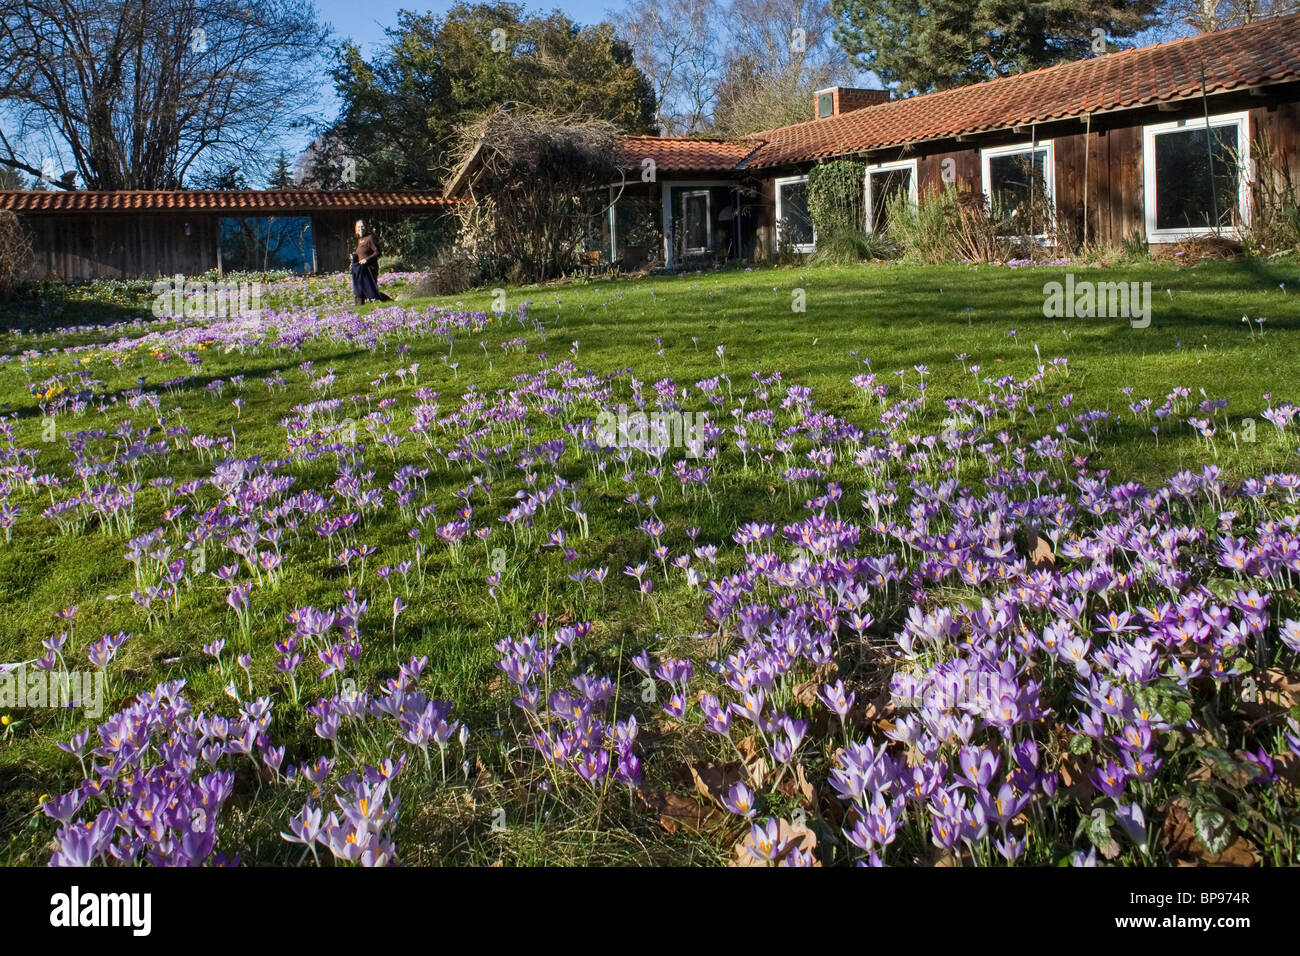 crocus flowers, garden, lawn Stock Photo